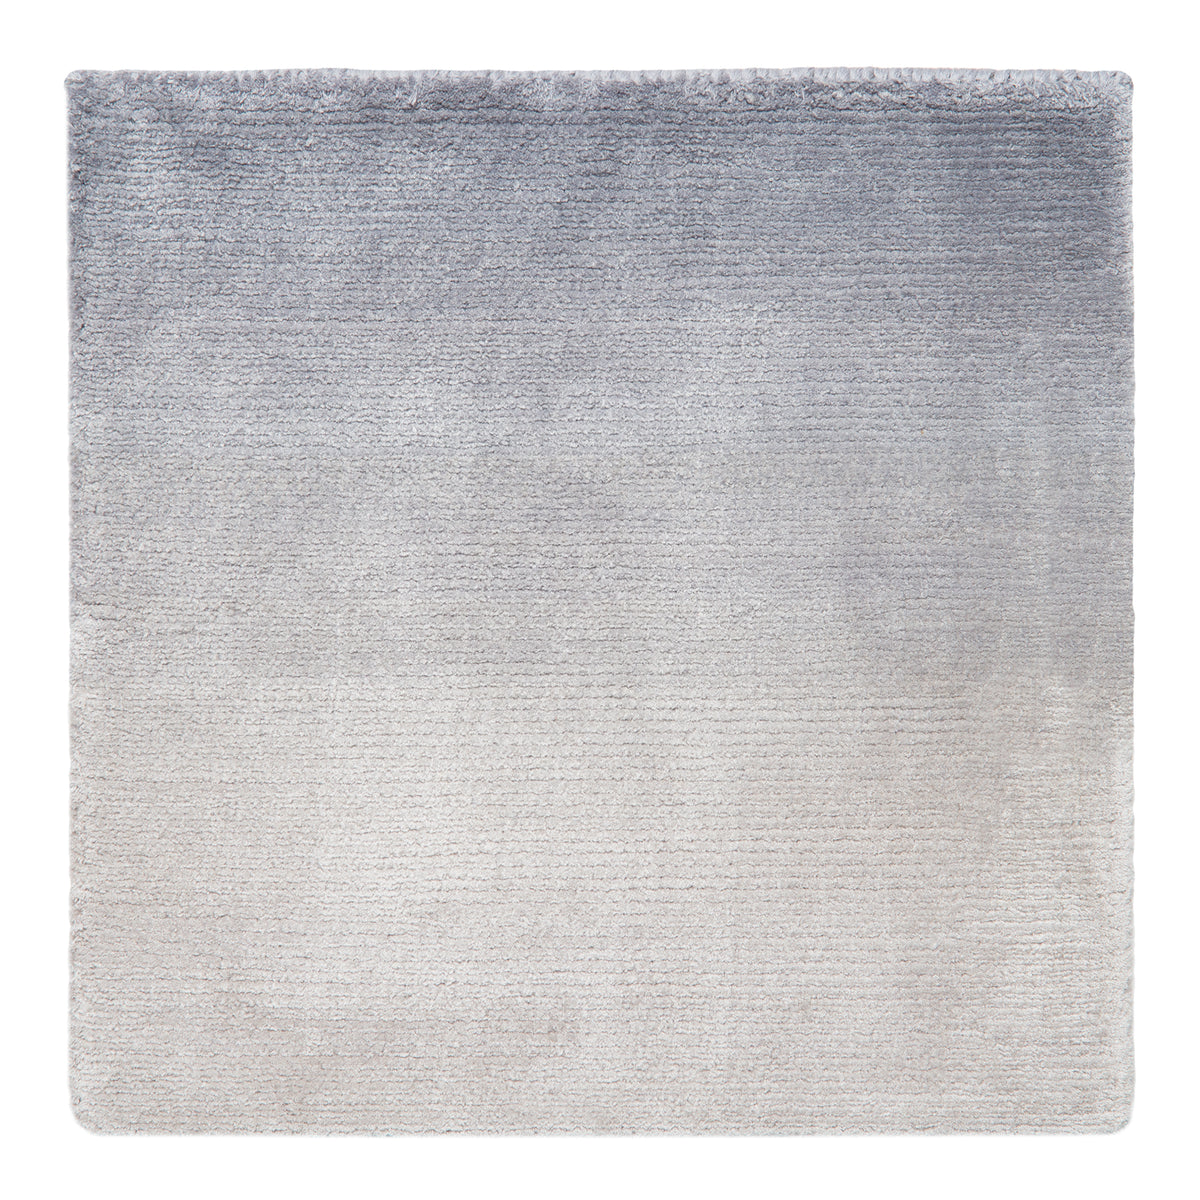 Ombre Silk 'Heron' - In Stock Rug